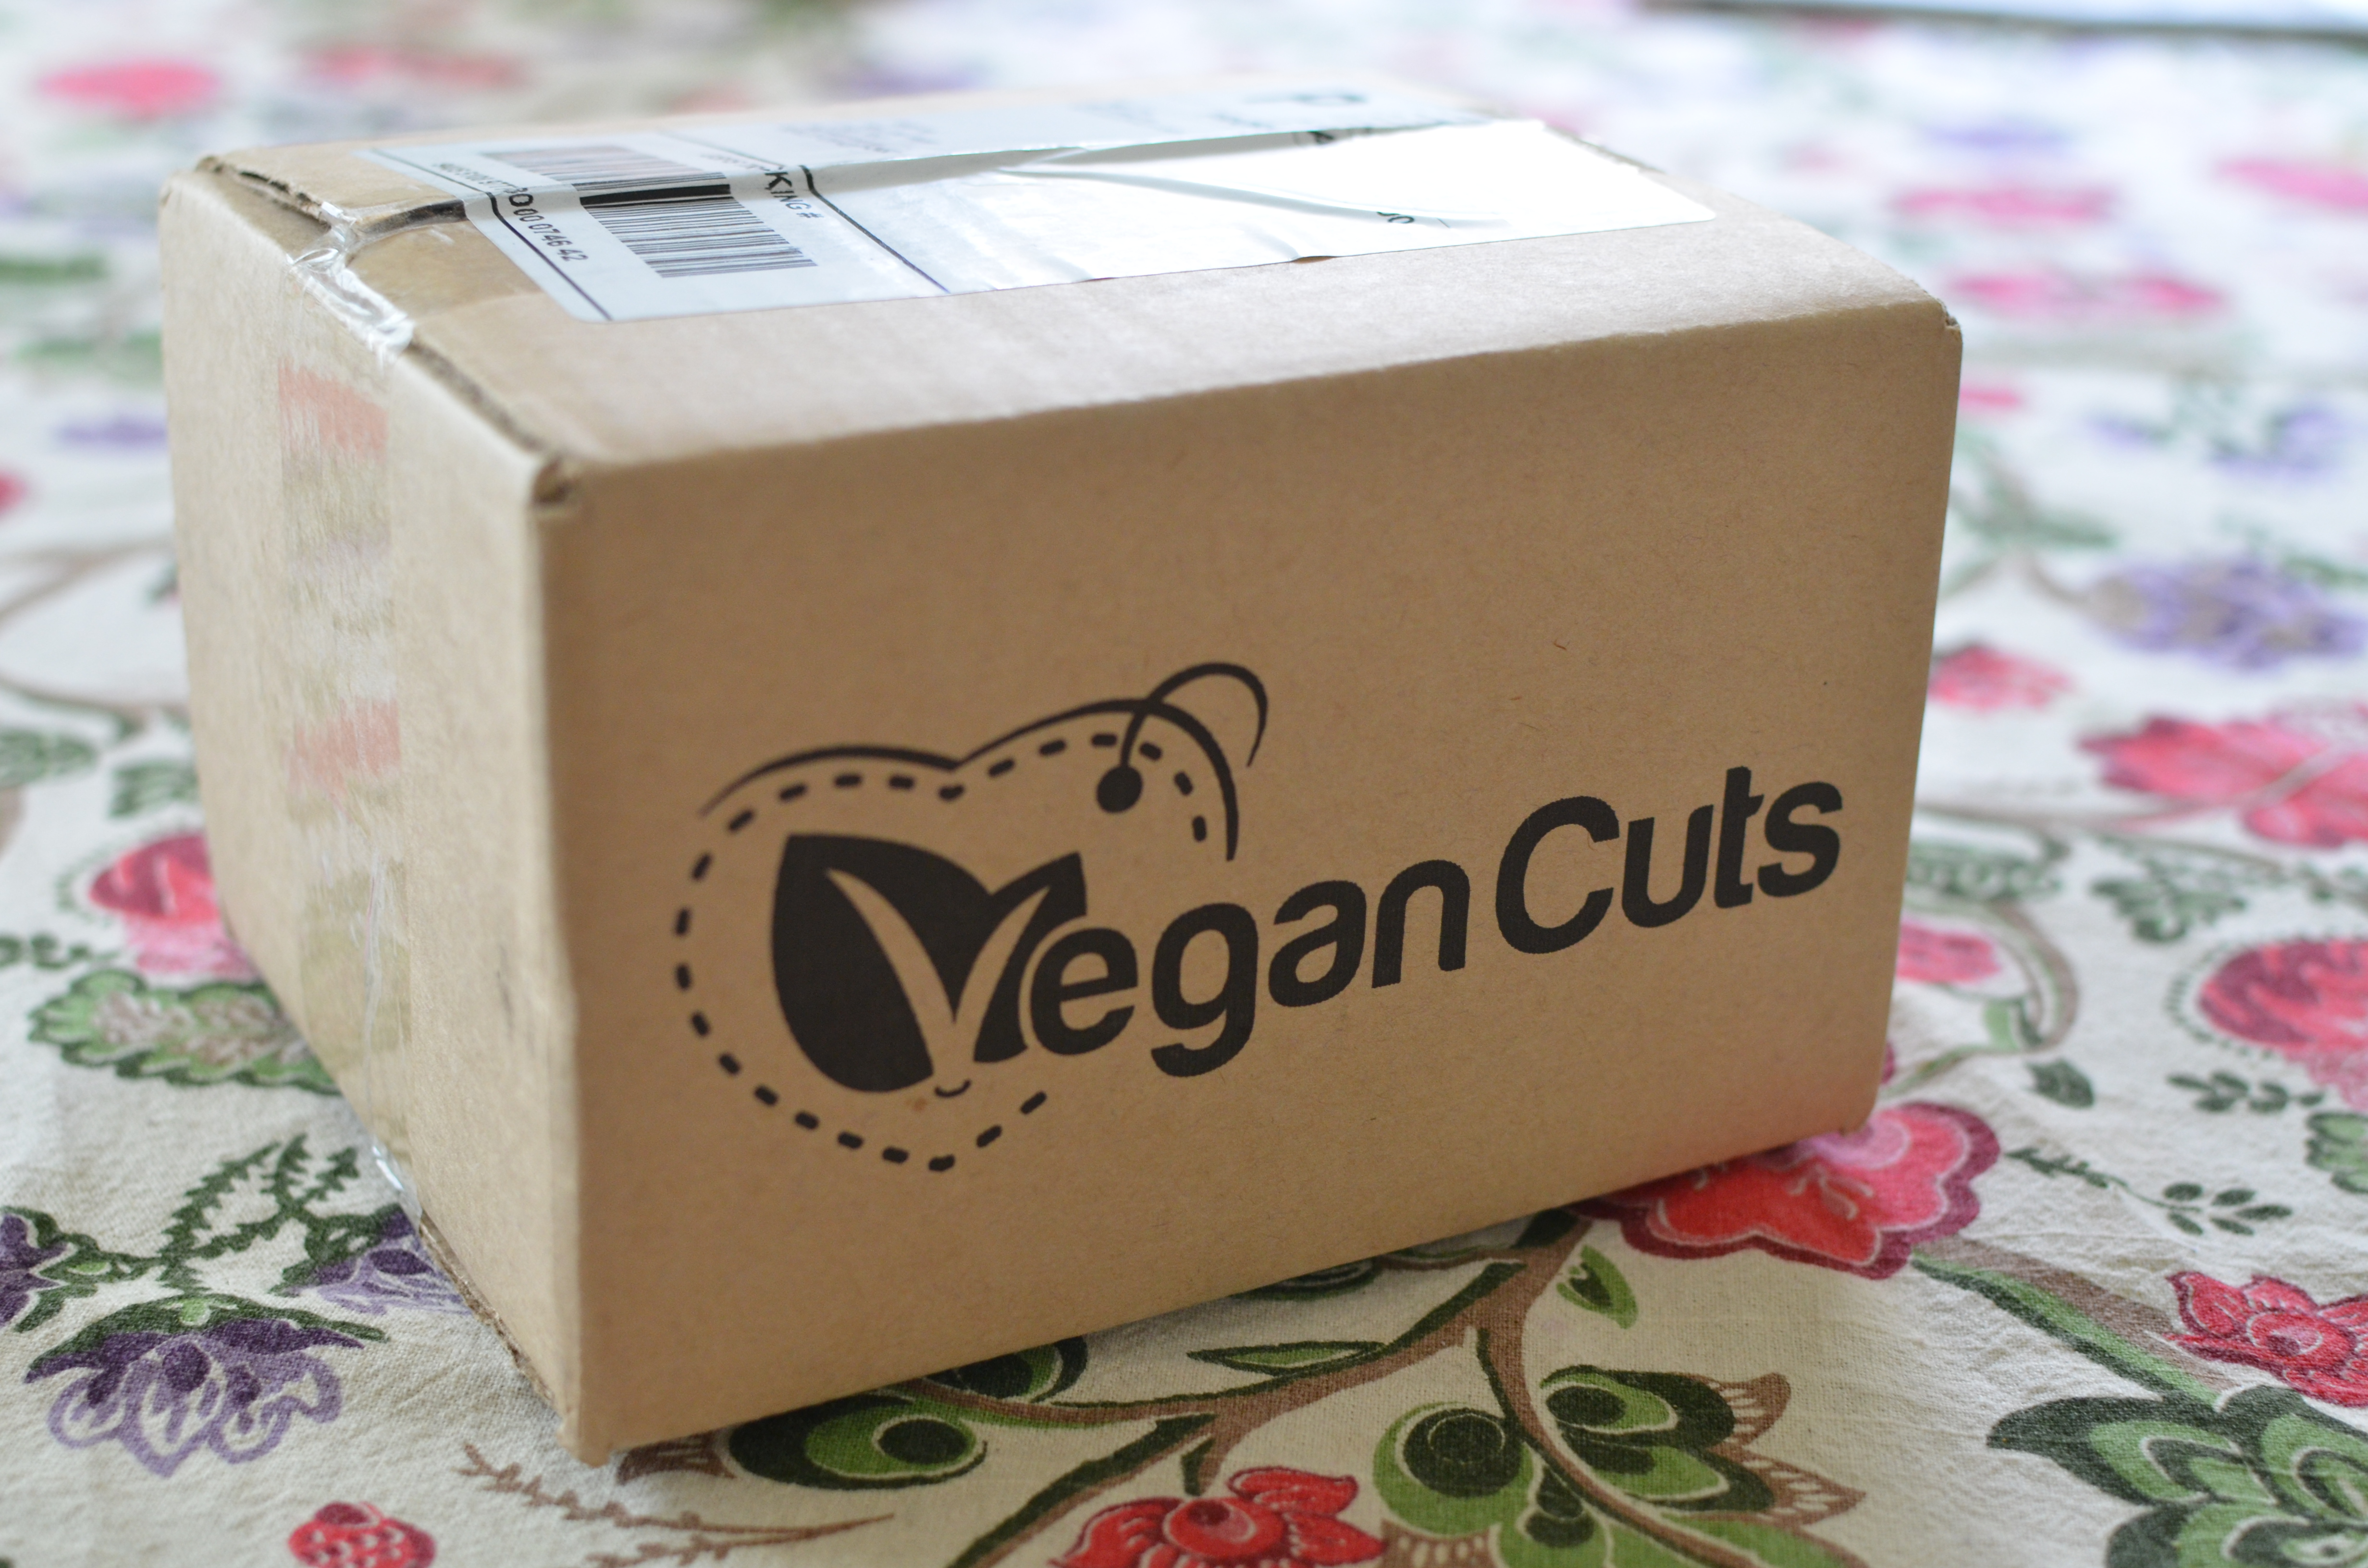 March Vegan Cuts Snack Box Review